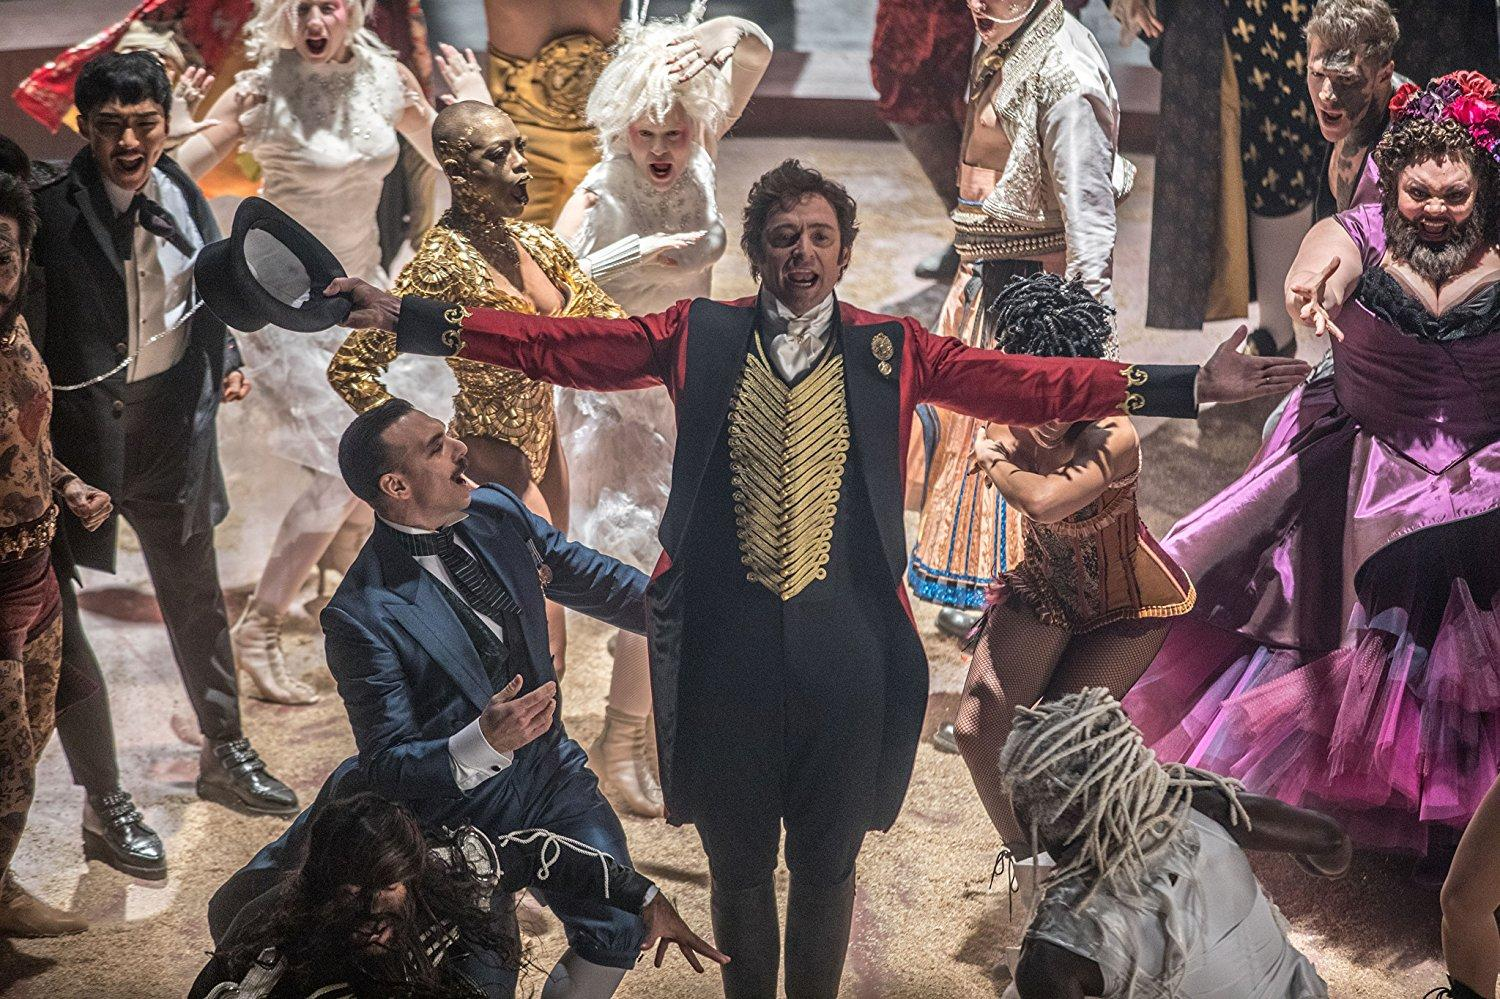 فيلم The Greatest Showman 2017 مترجم